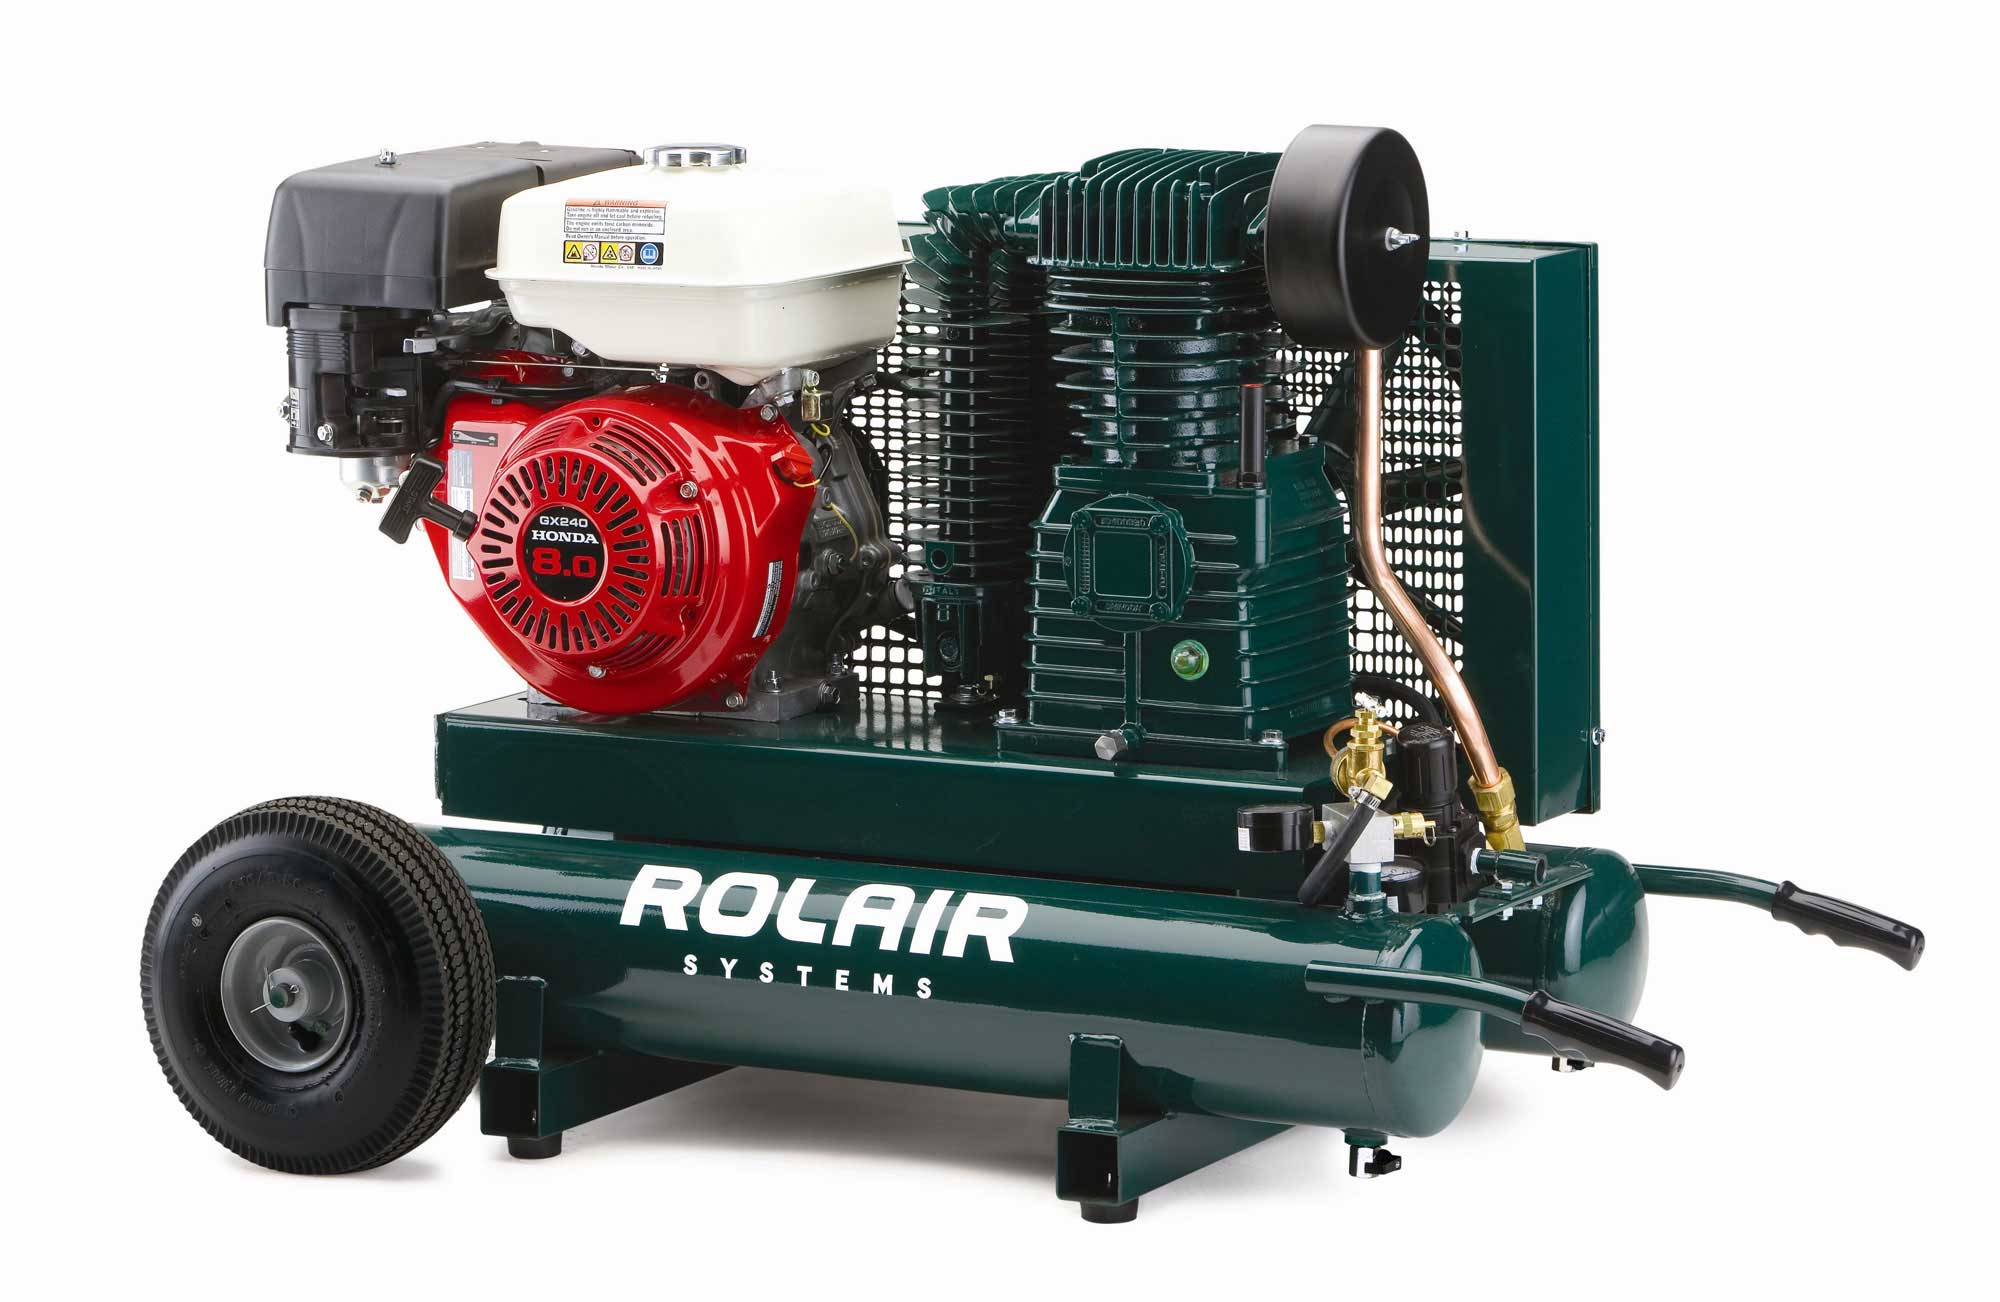 Rolair 9 HP 9 Gallon Gas Portable Air Compressor w/Honda Engine 7722HK28